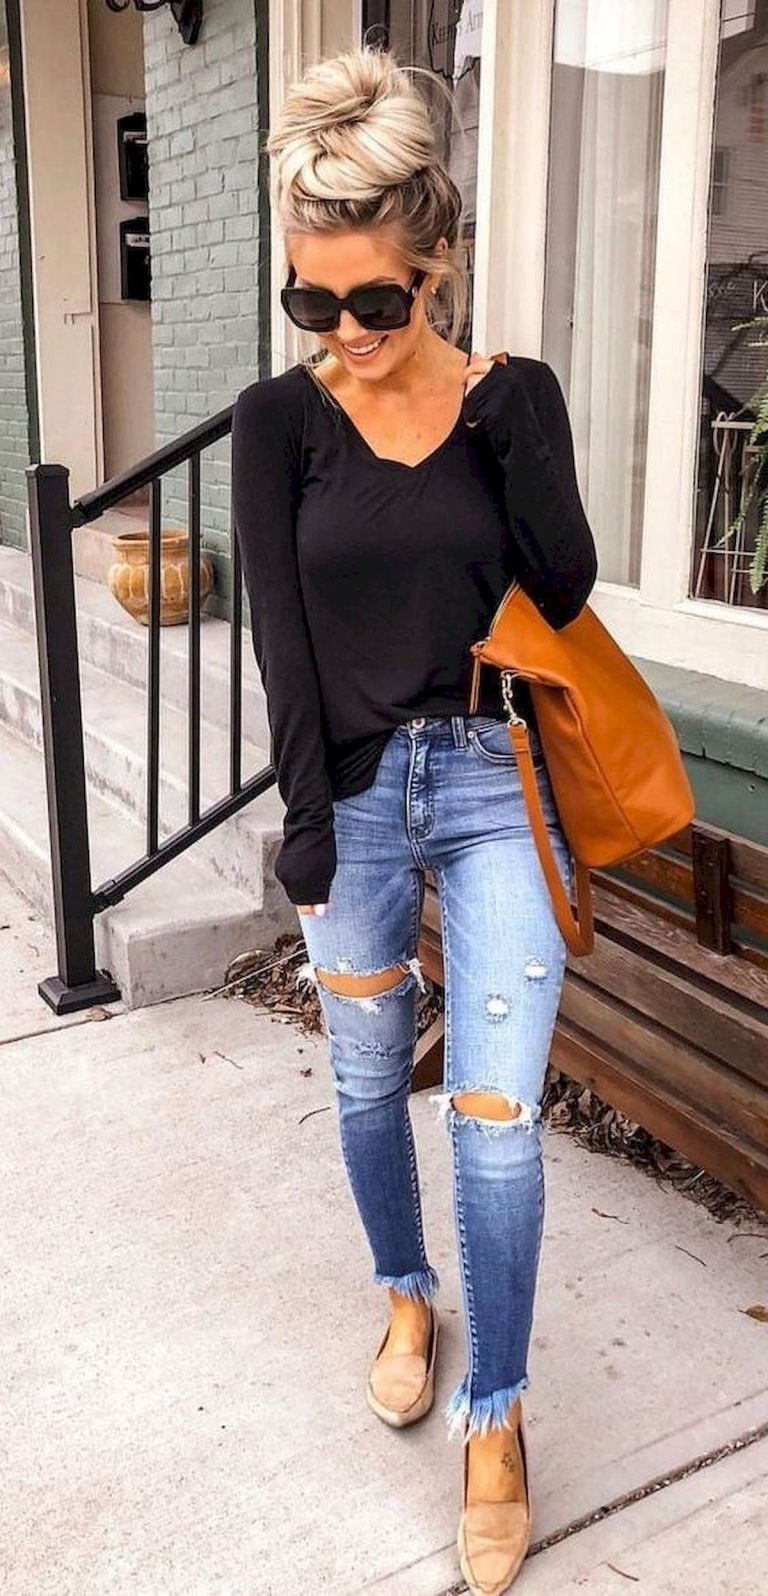 Best Spring Outfits Casual 2019 For Women 40 Fashion And Lifestyle Spring Outfits Casual Spring Outfits Casual Fashion